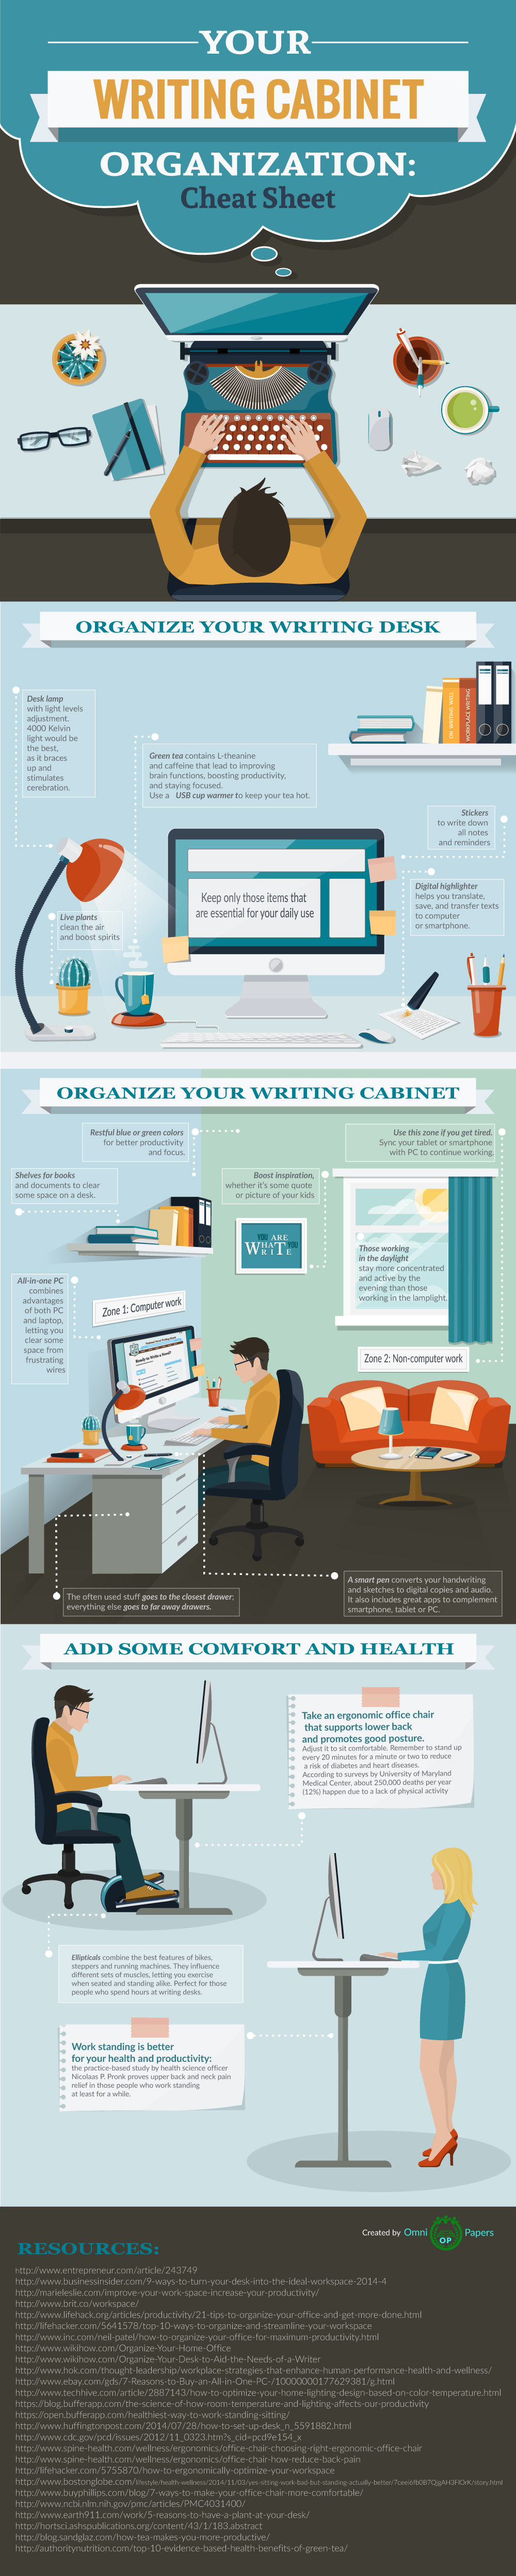 ways to organize your writing cabinet